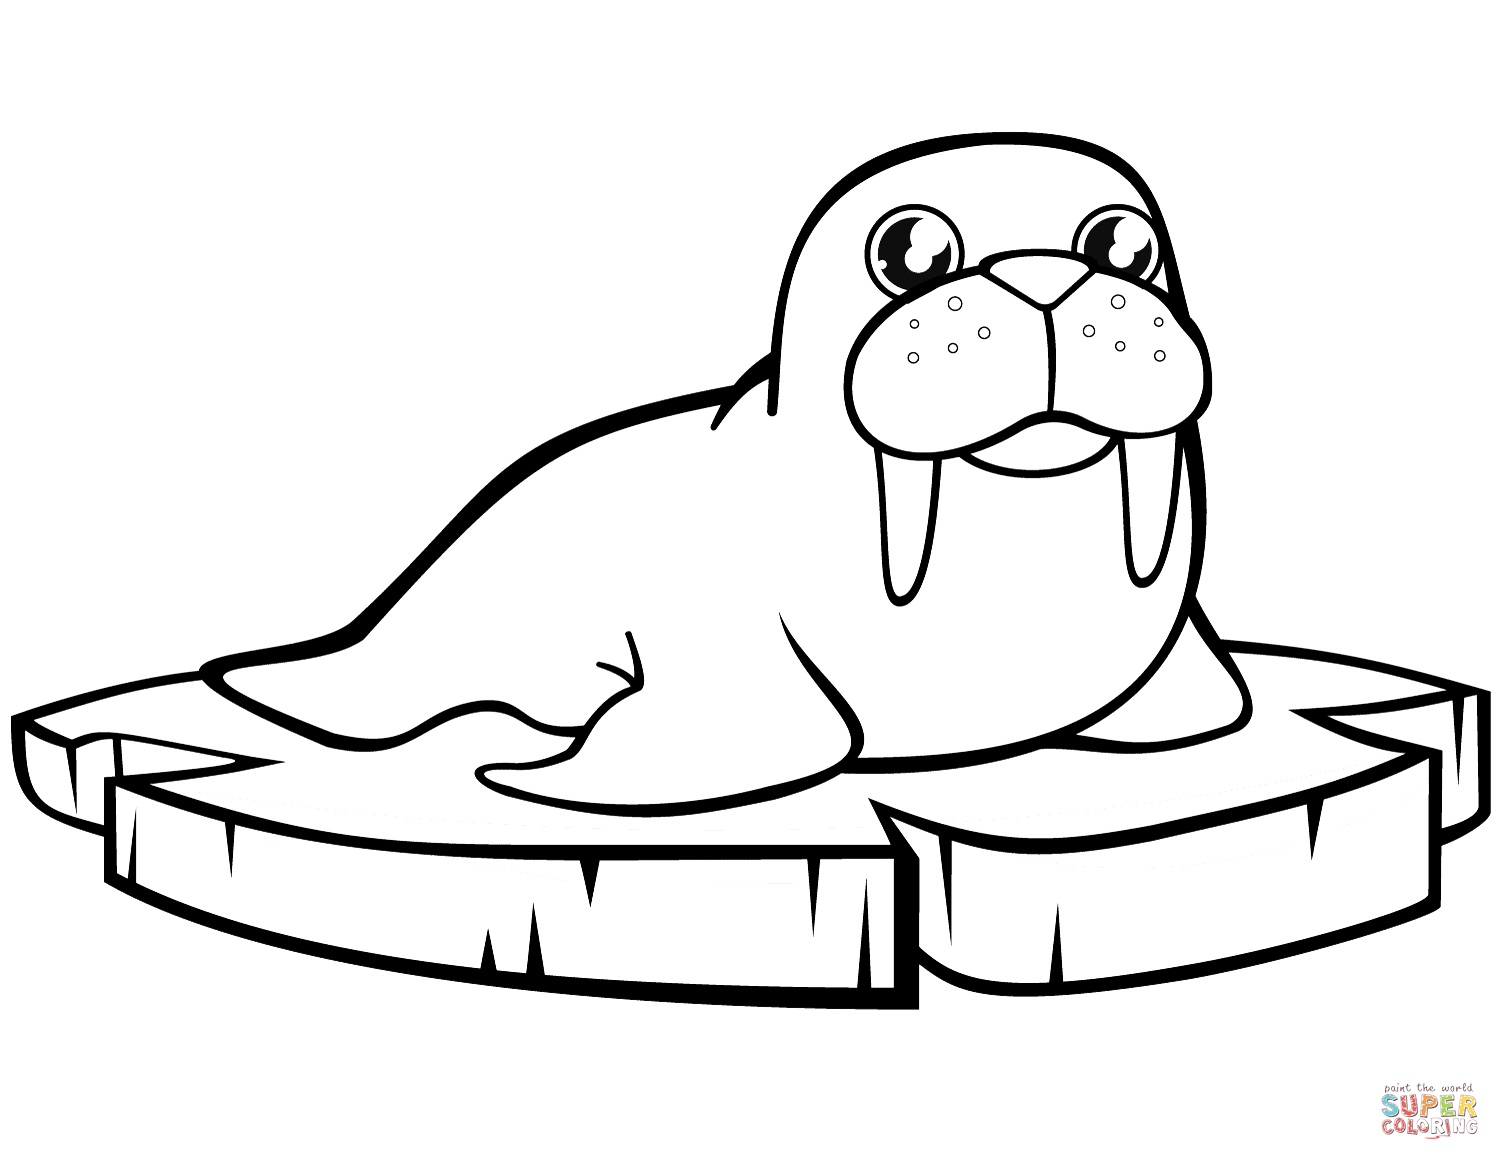 walrus coloring pages free printable walrus coloring pages for kids coloring pages walrus